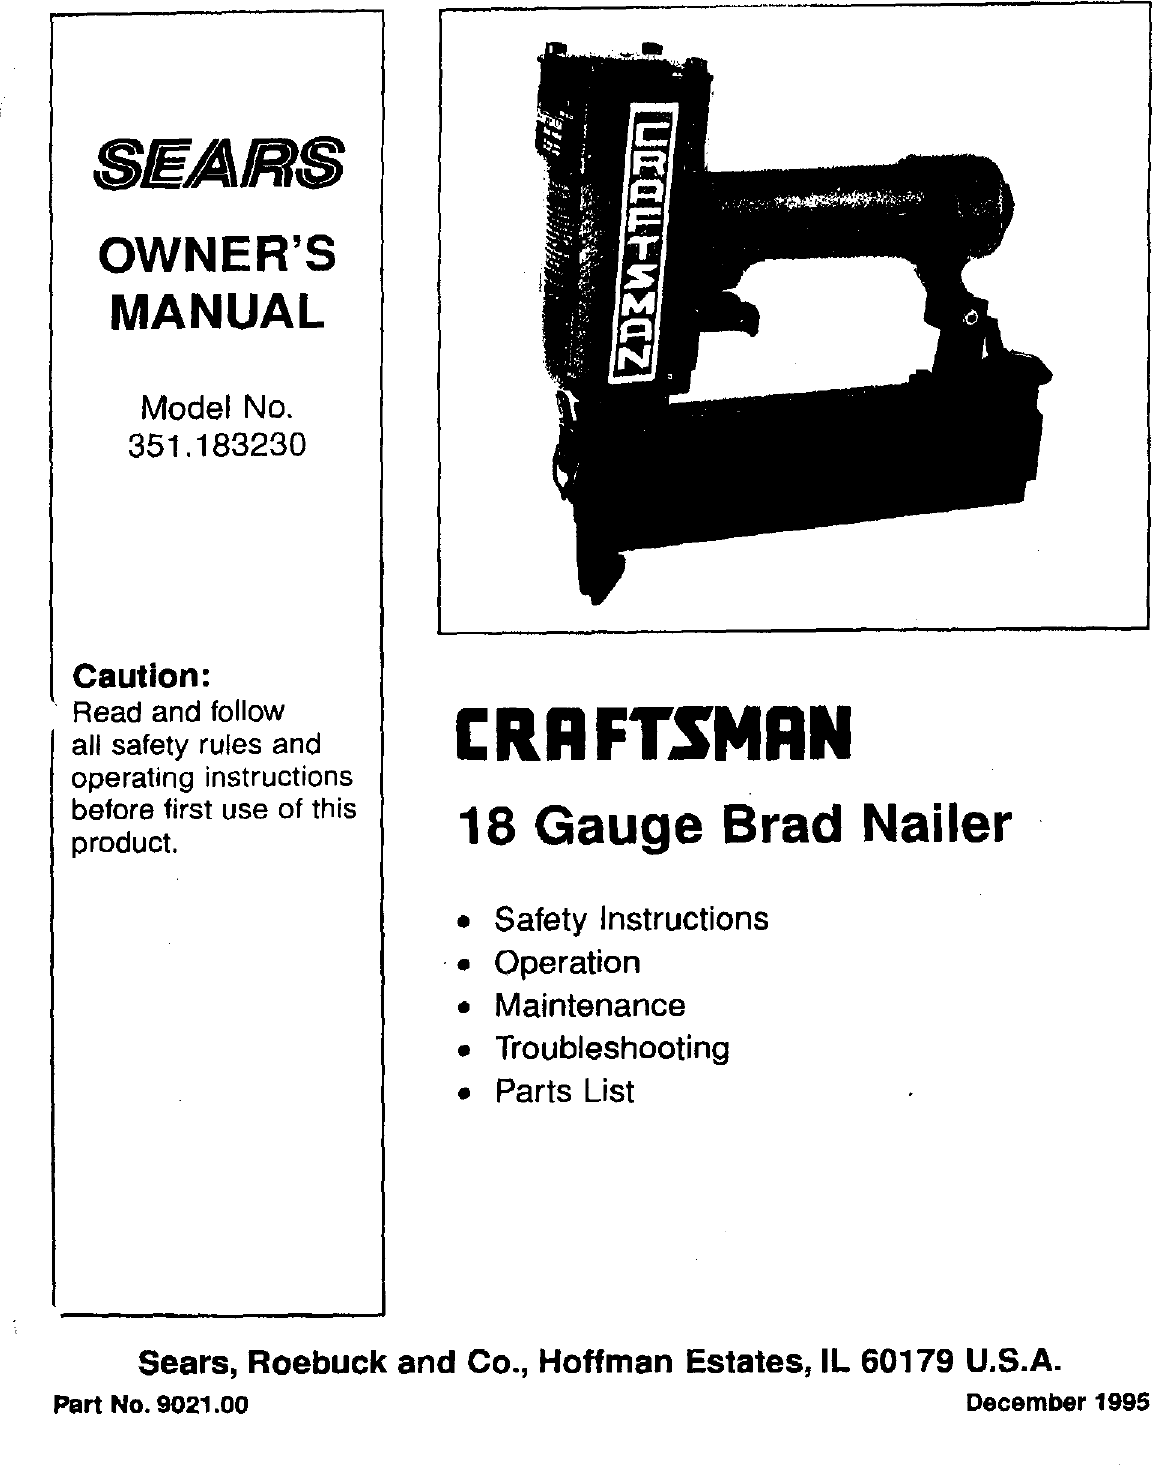 Craftsman 351183230 User Manual BRAD NAILER Manuals And